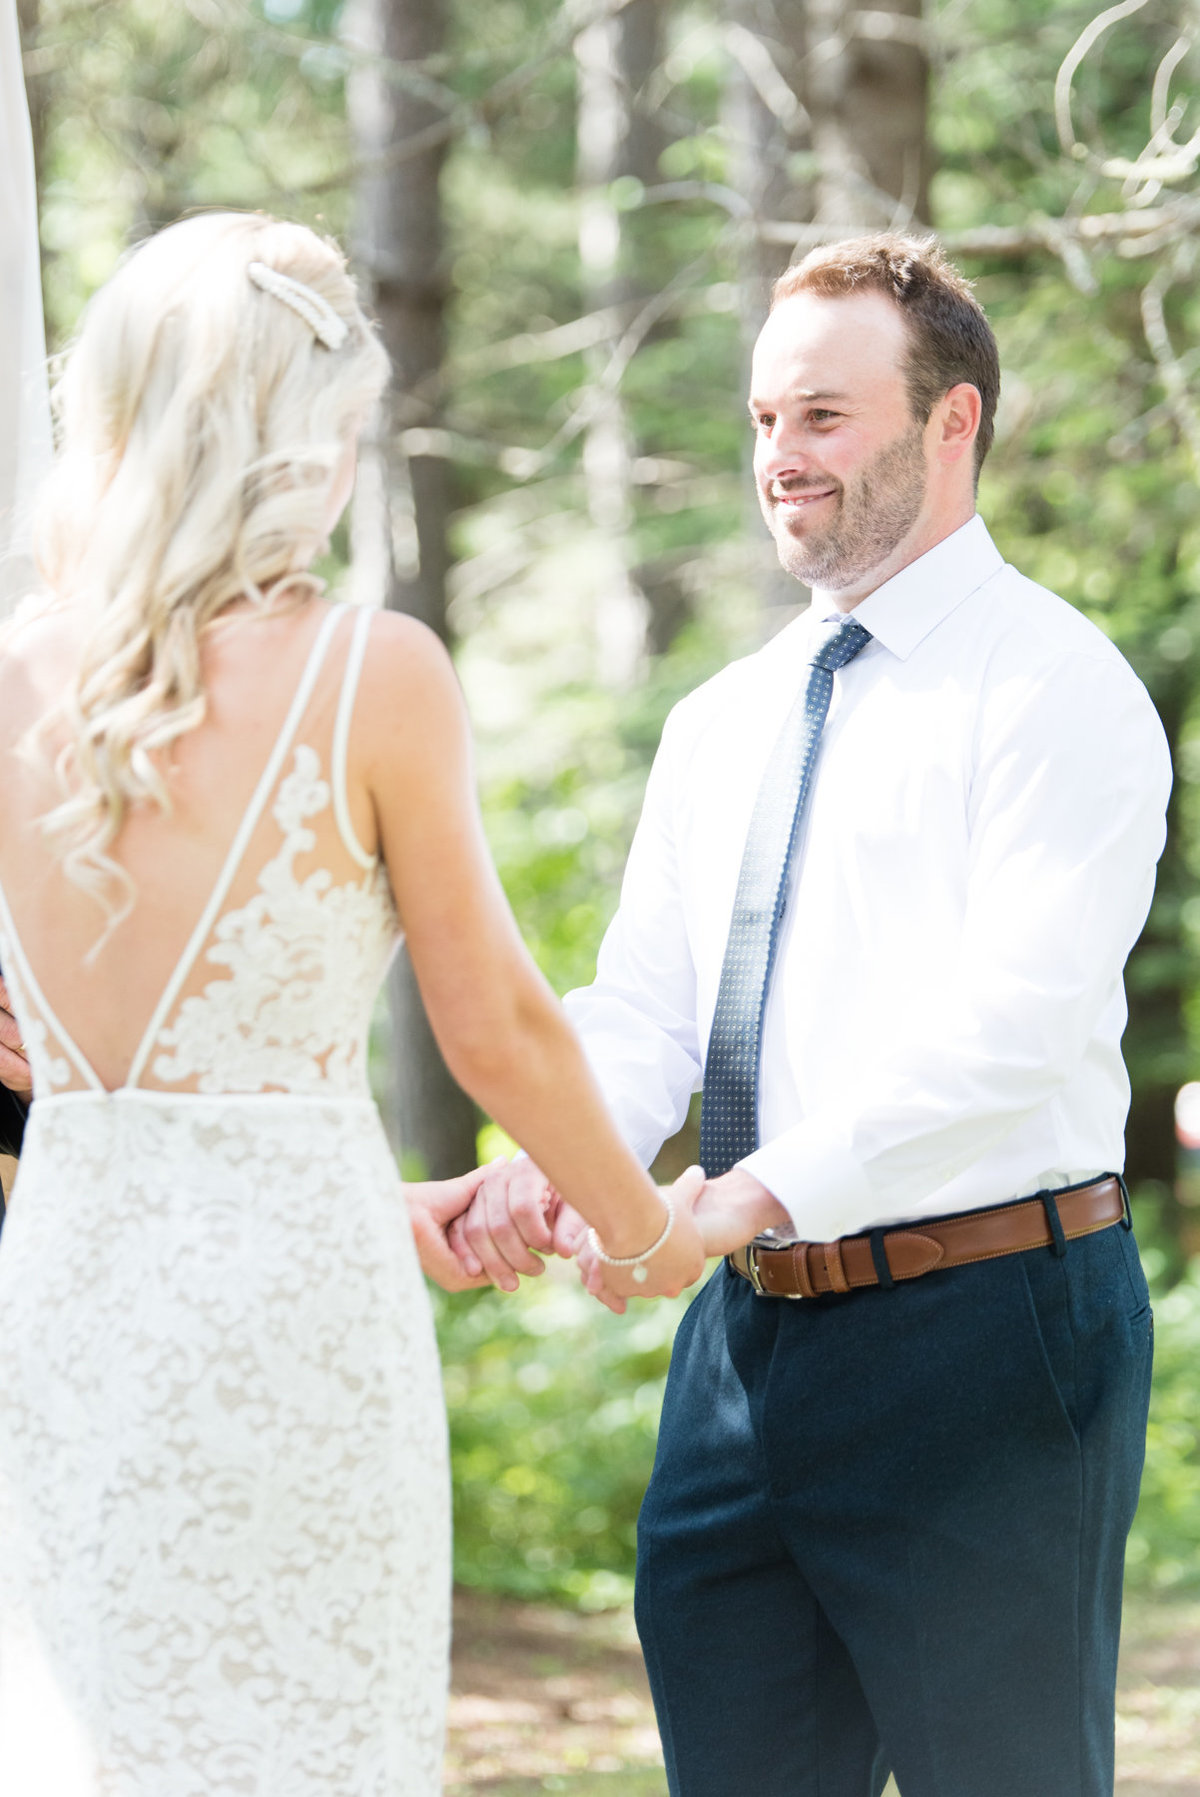 Groom looks lovingly at his bride during their wedding ceremony at Stepstone Centre in Thunder Bay